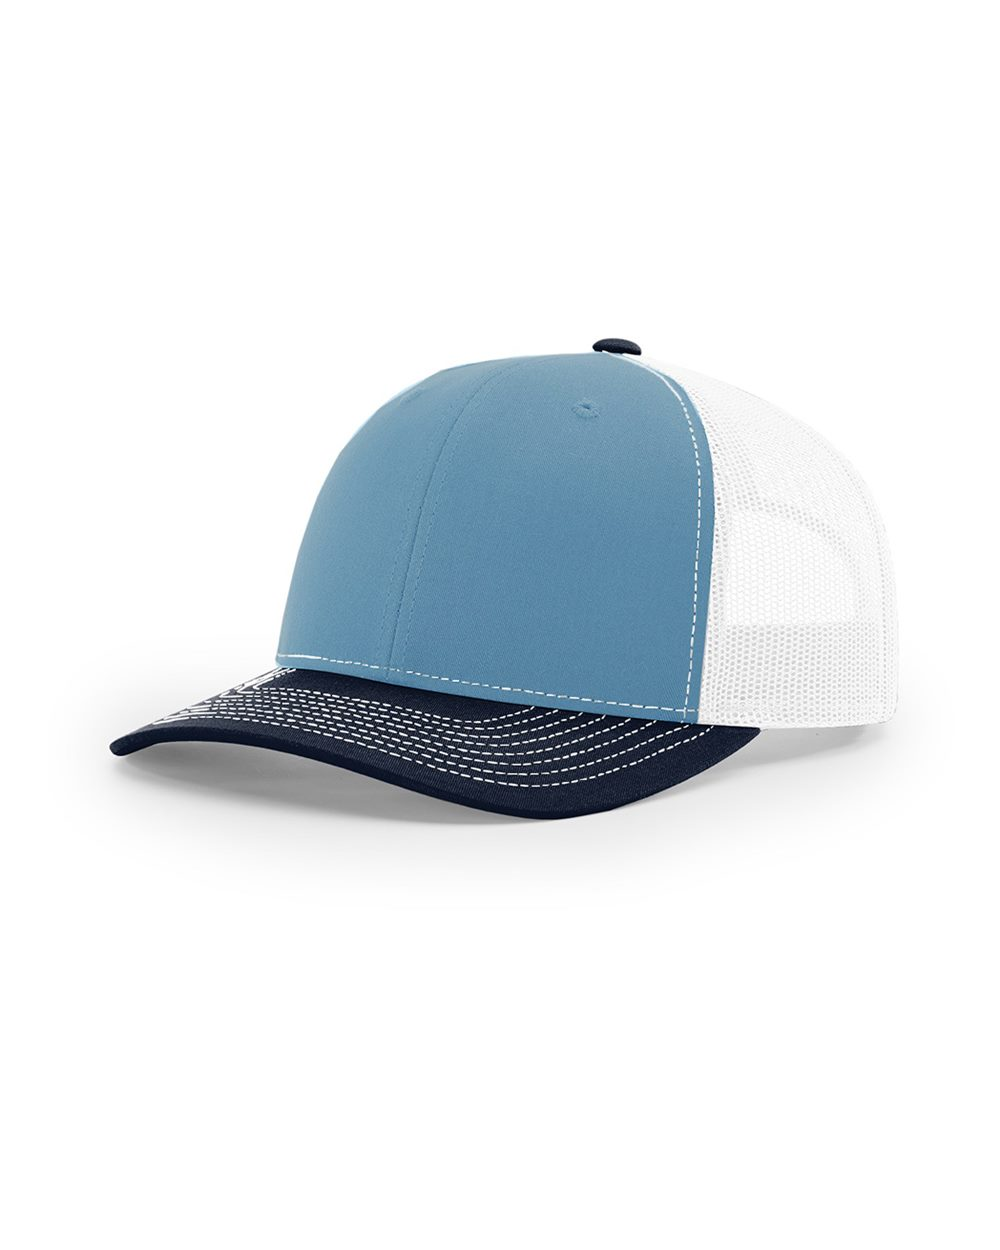 click to view Columbia Blue/ White/ Navy